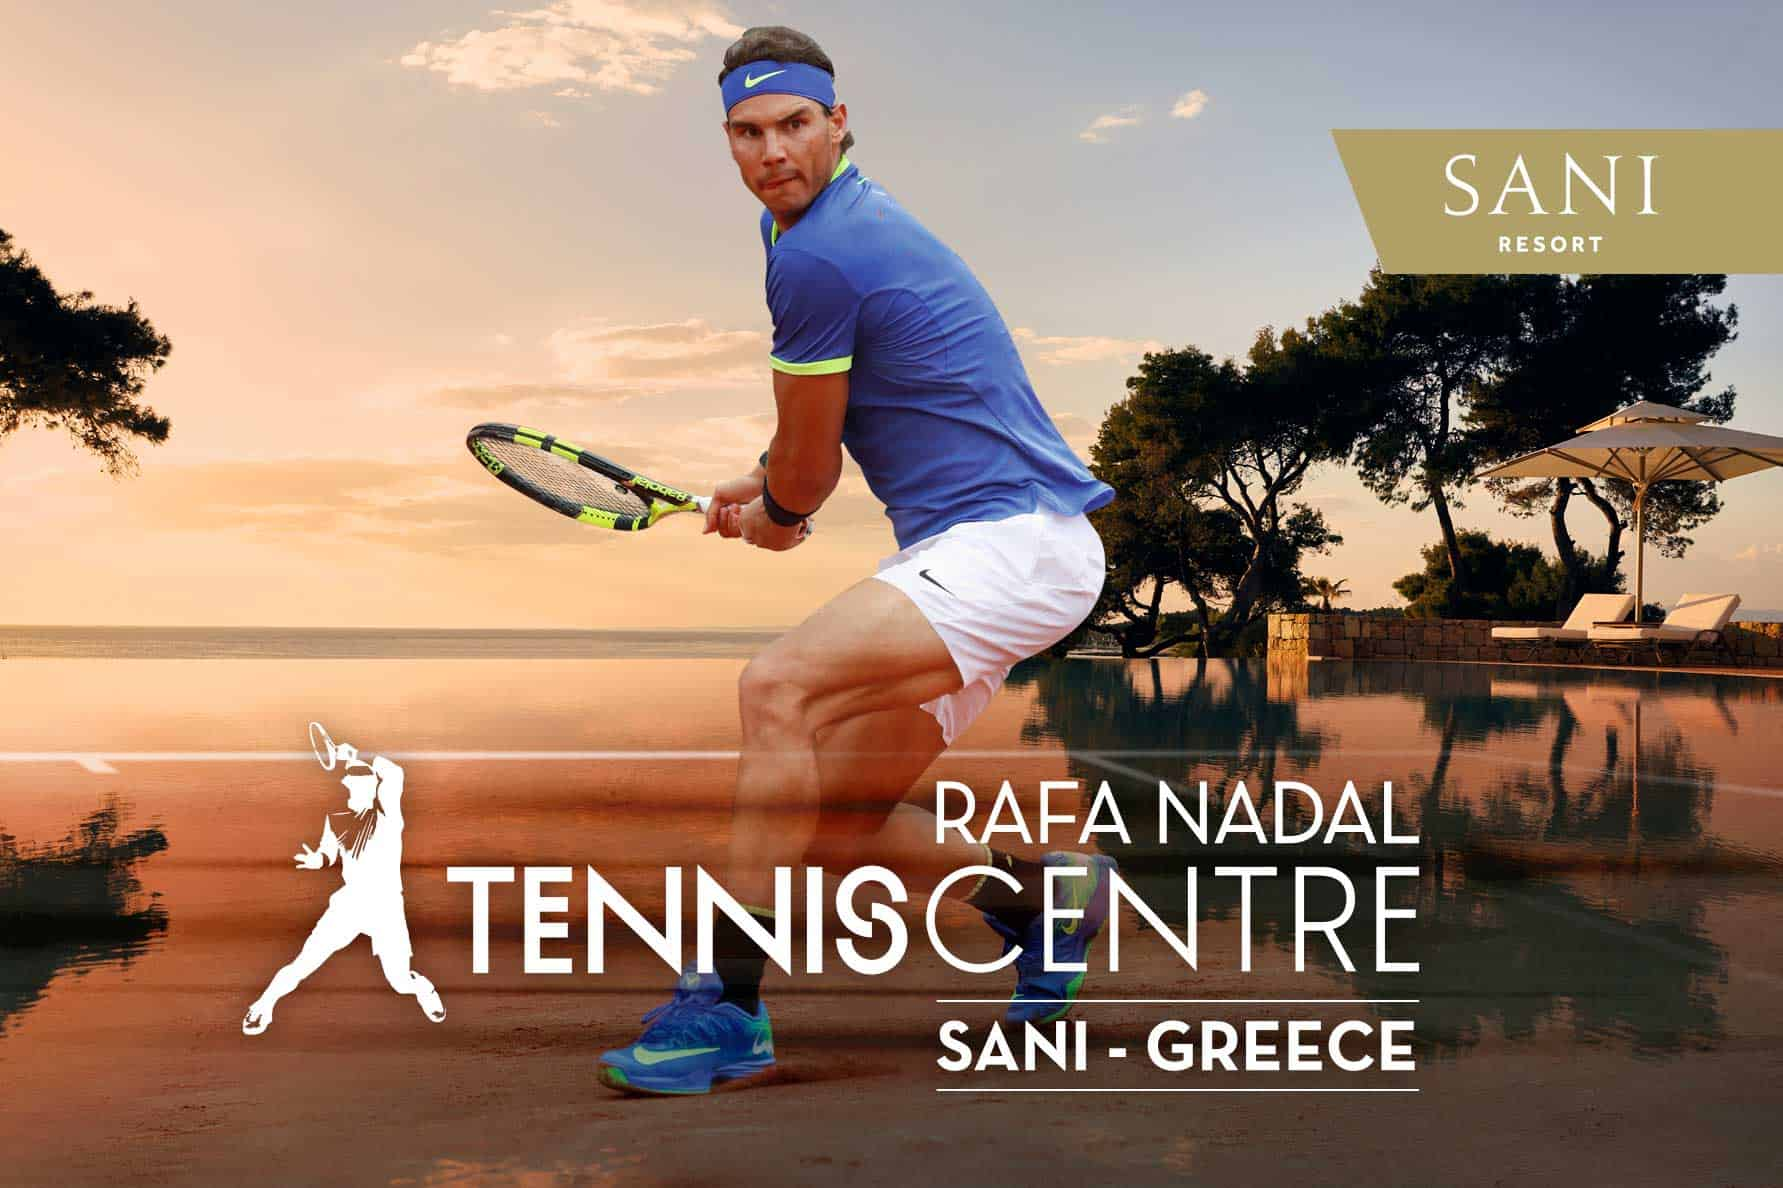 Nadal's New Greek Tennis Center